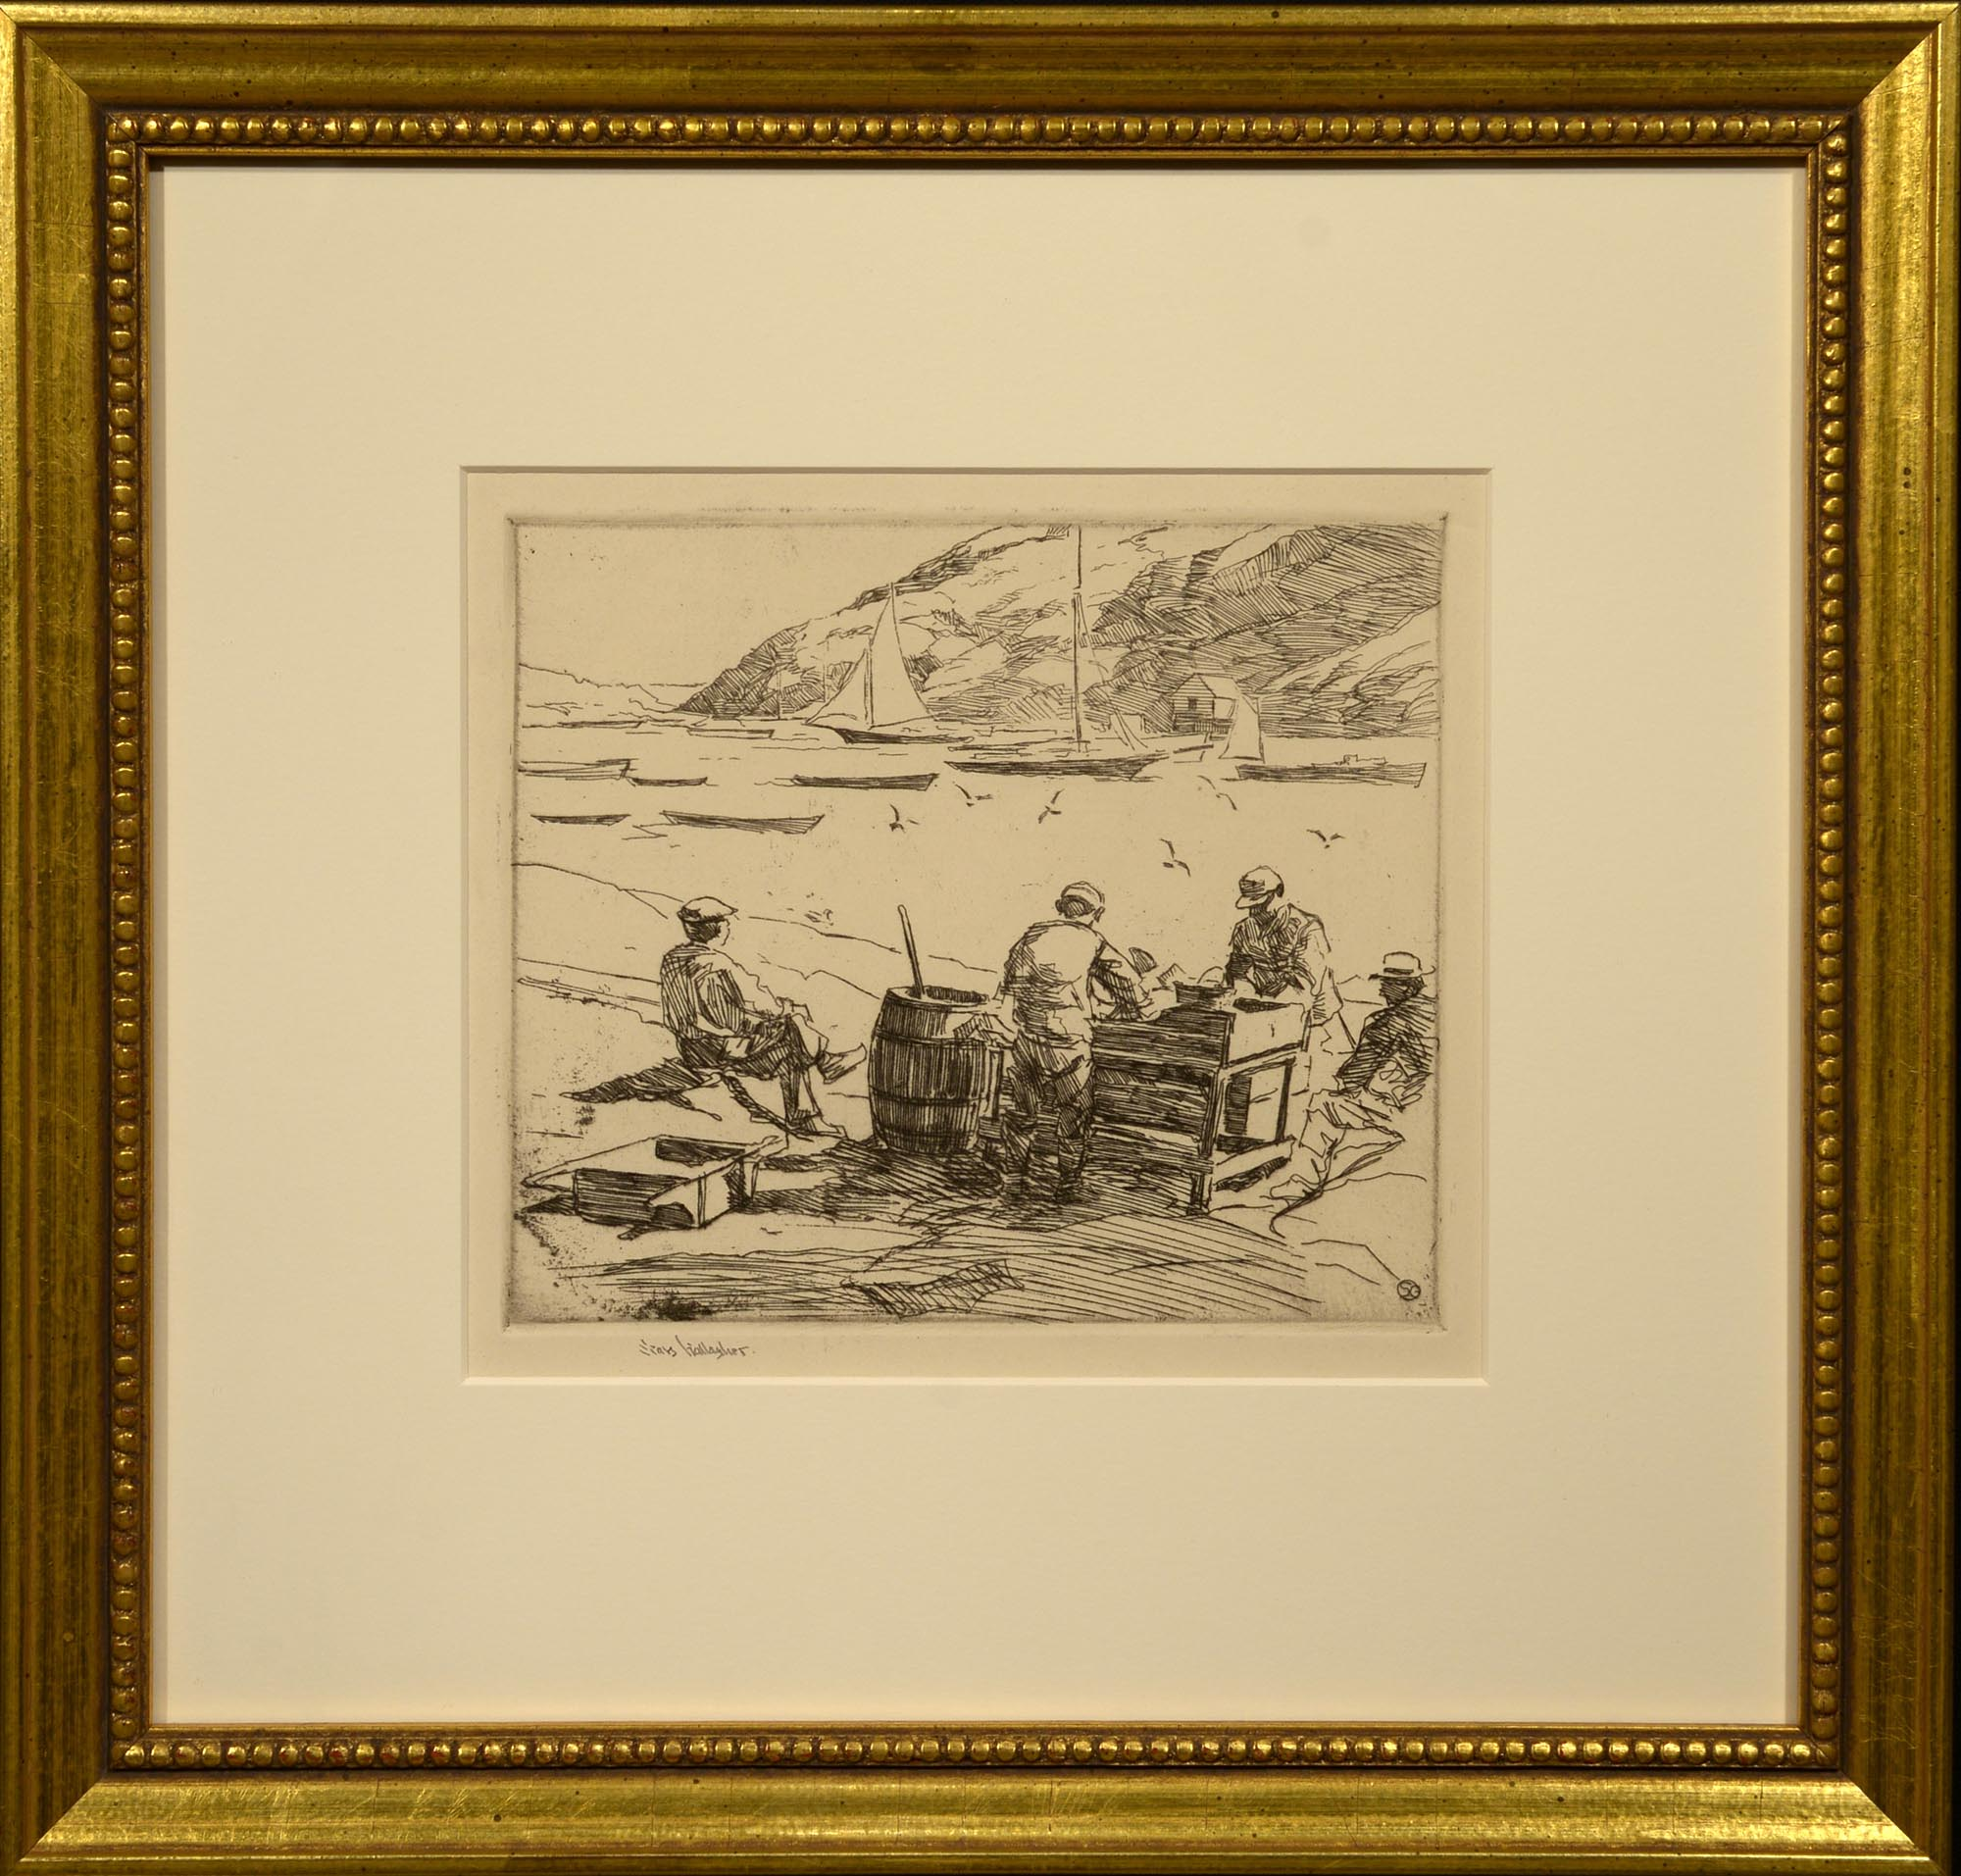 Sears Gallagher Cleaning Fish, Monhegan Harbor framed